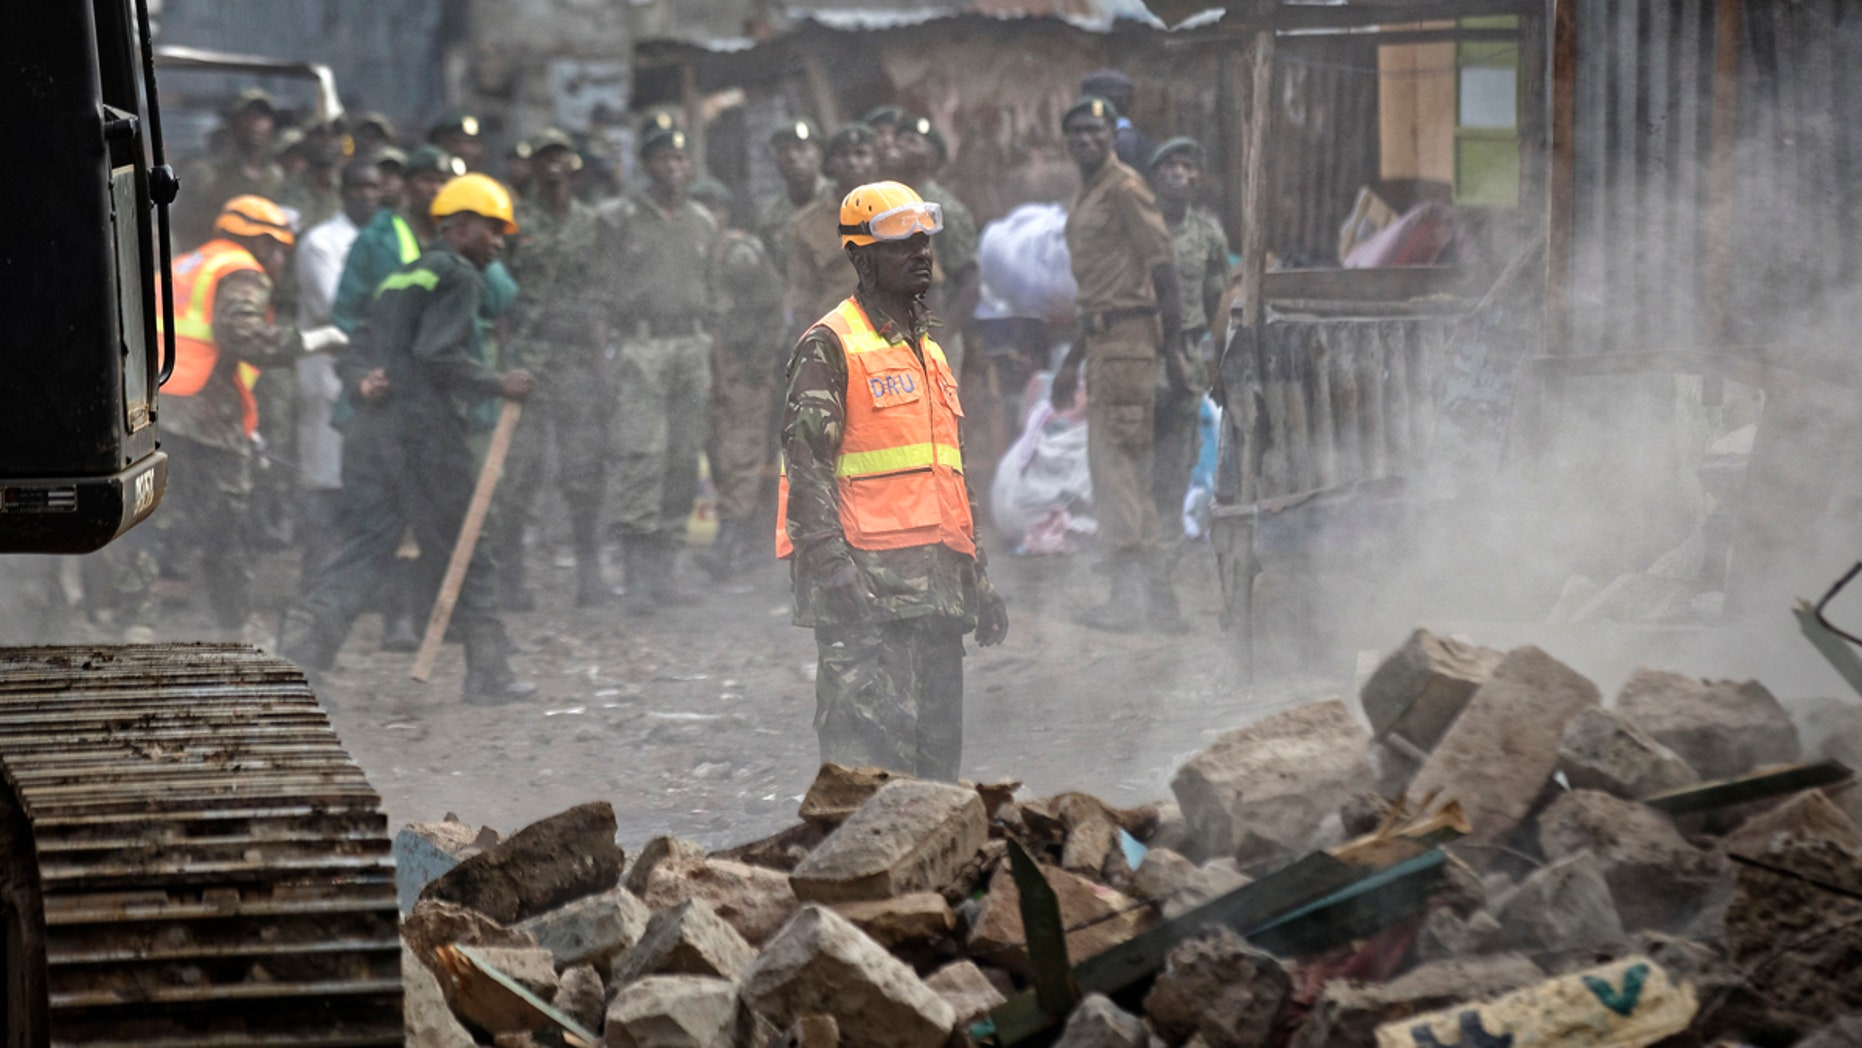 A rescuer aided by a heavy digger attends the scene of a five-storey collapsed building in the Huruma neighborhood of Nairobi, Kenya, June 3, 2018.